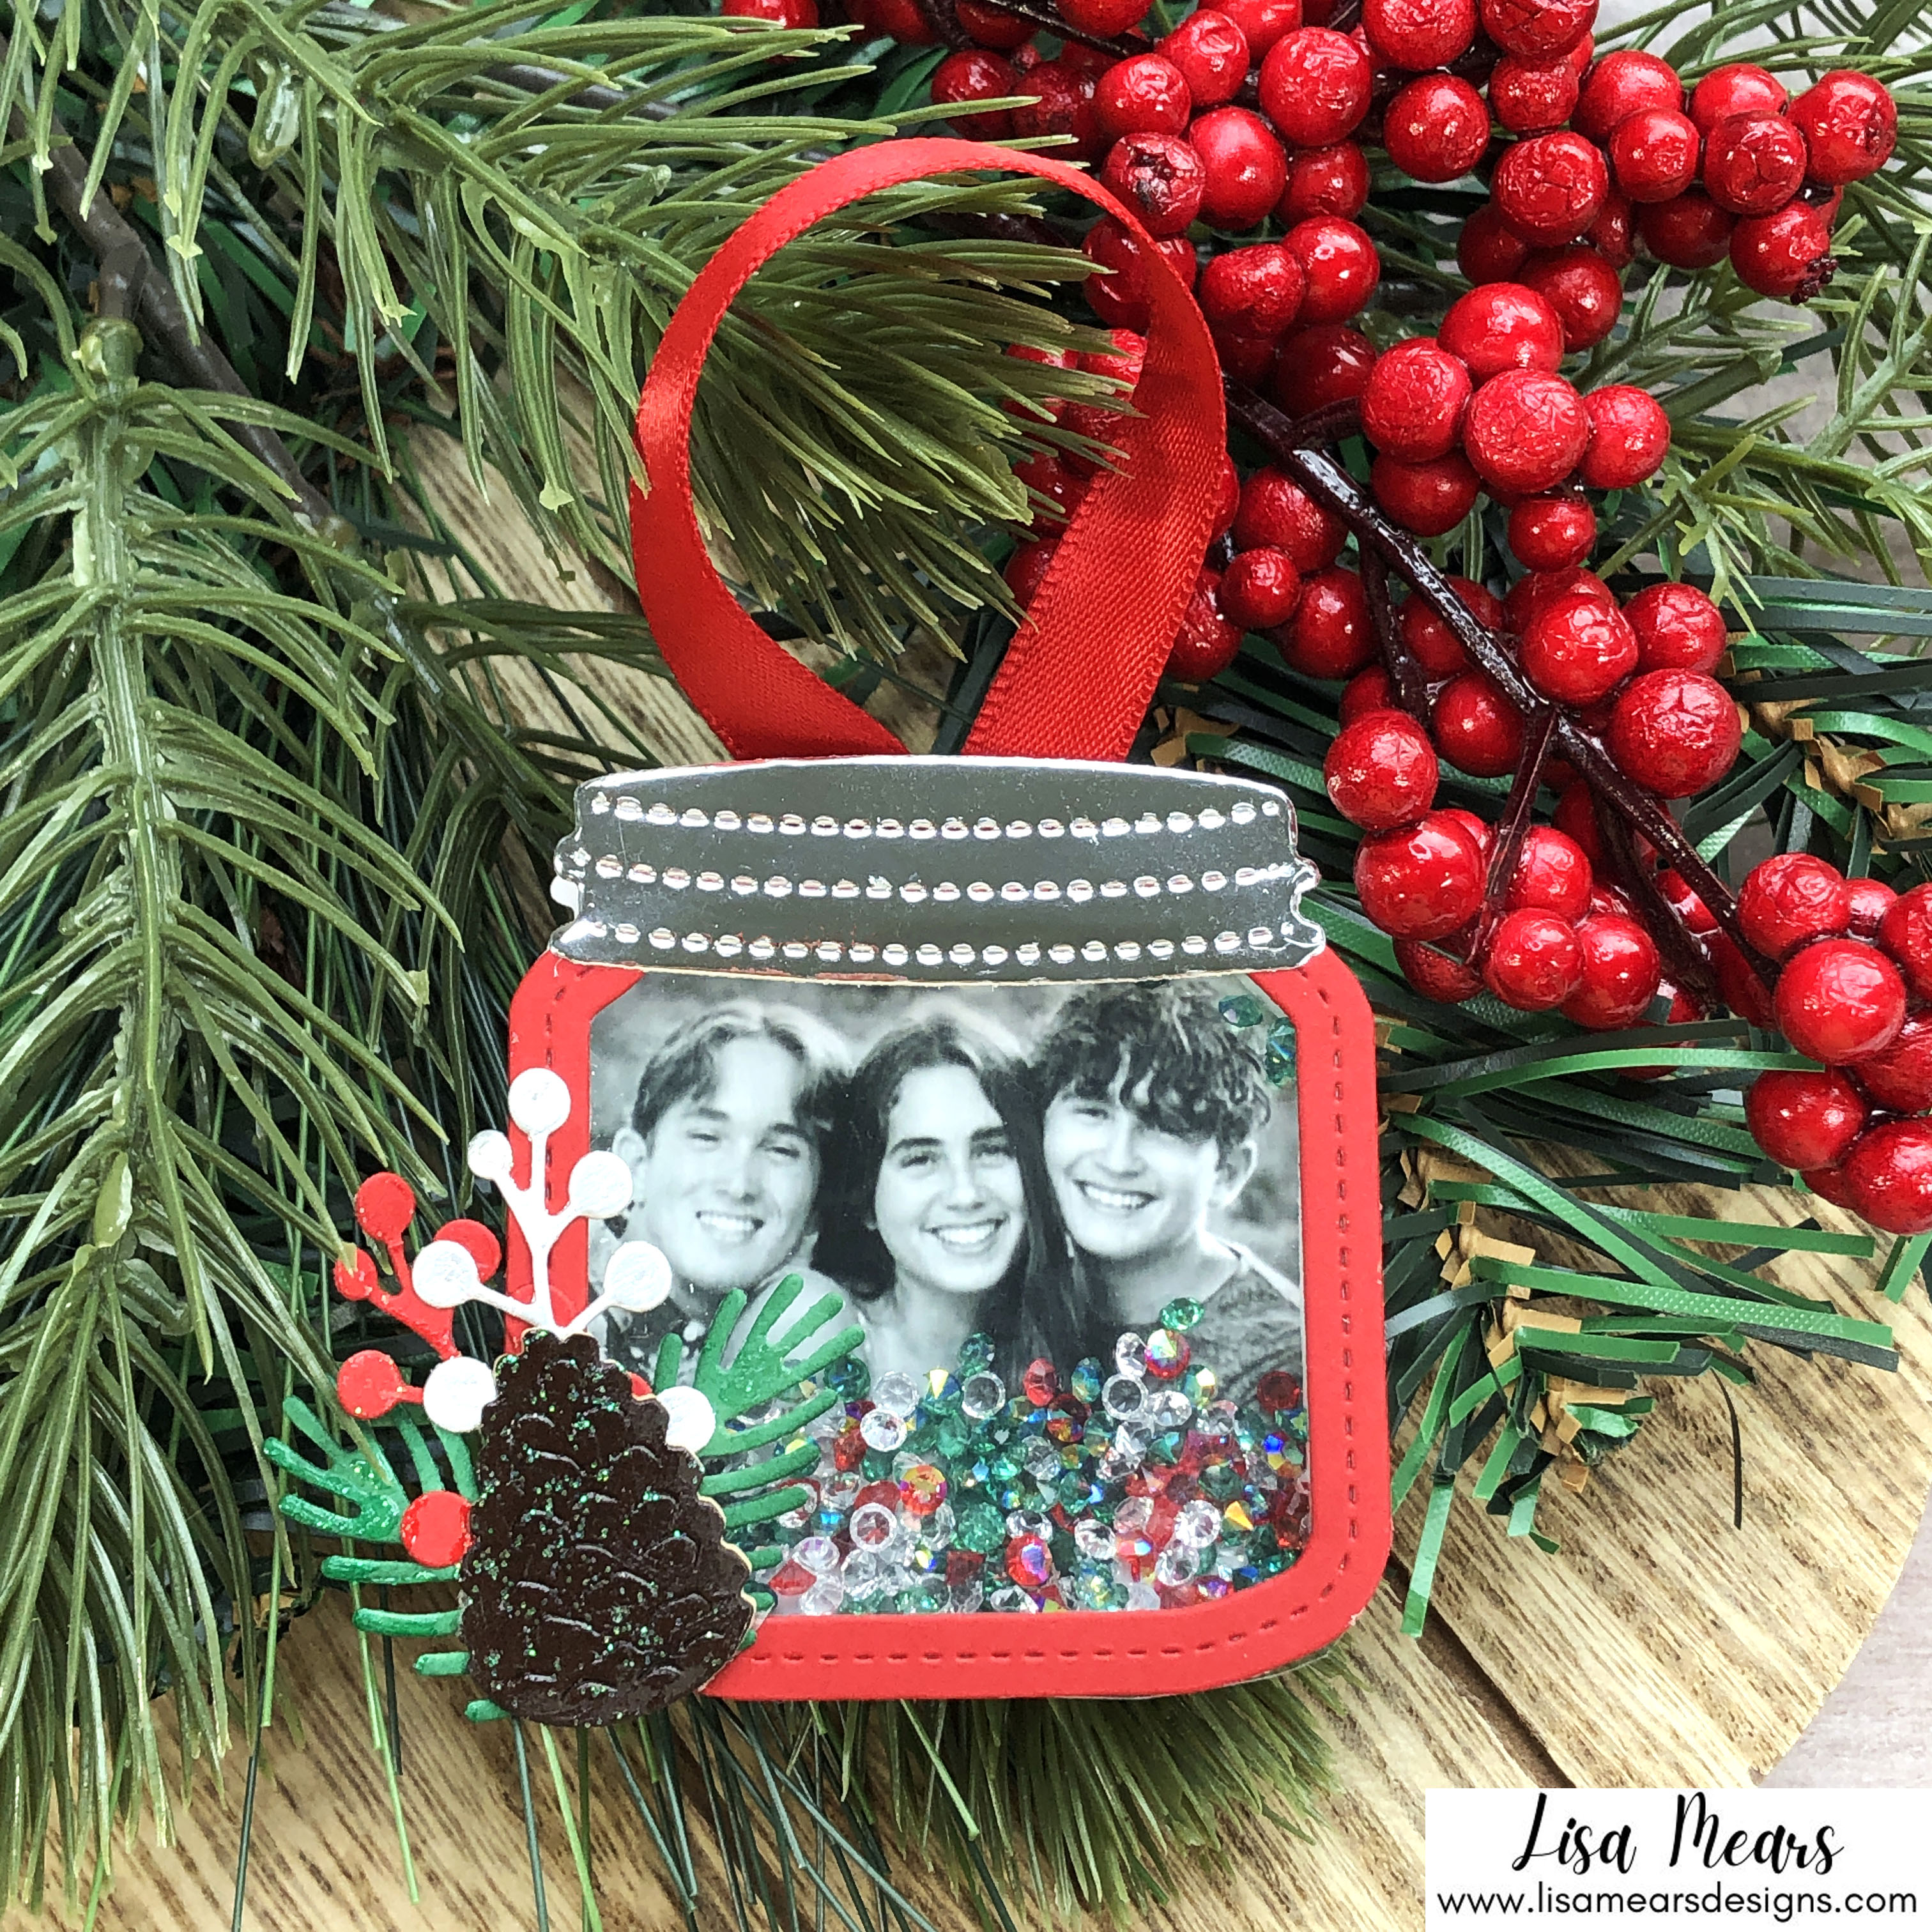 Queen & Co Holiday Jar Shaker Kit - 10 Cards 1 Kit - Christmas Shaker Ornament with Photo